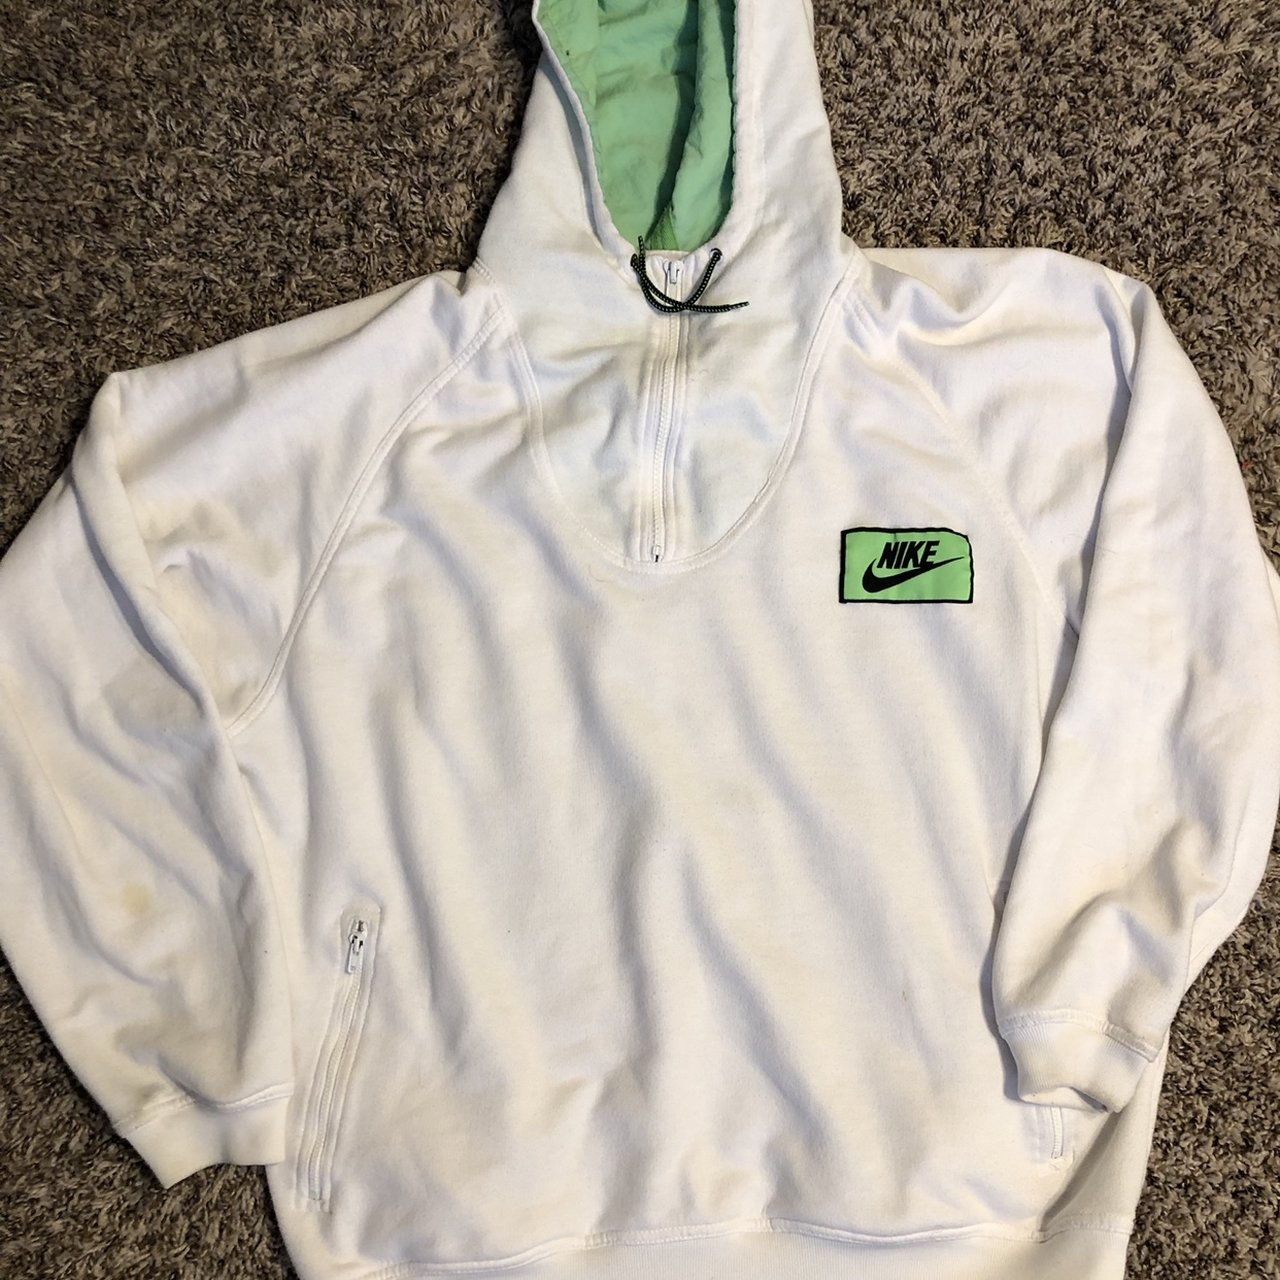 d8e8f1d81a35 Vintage 90 s Nike Hoodie White   Green RARE Medium large but - Depop